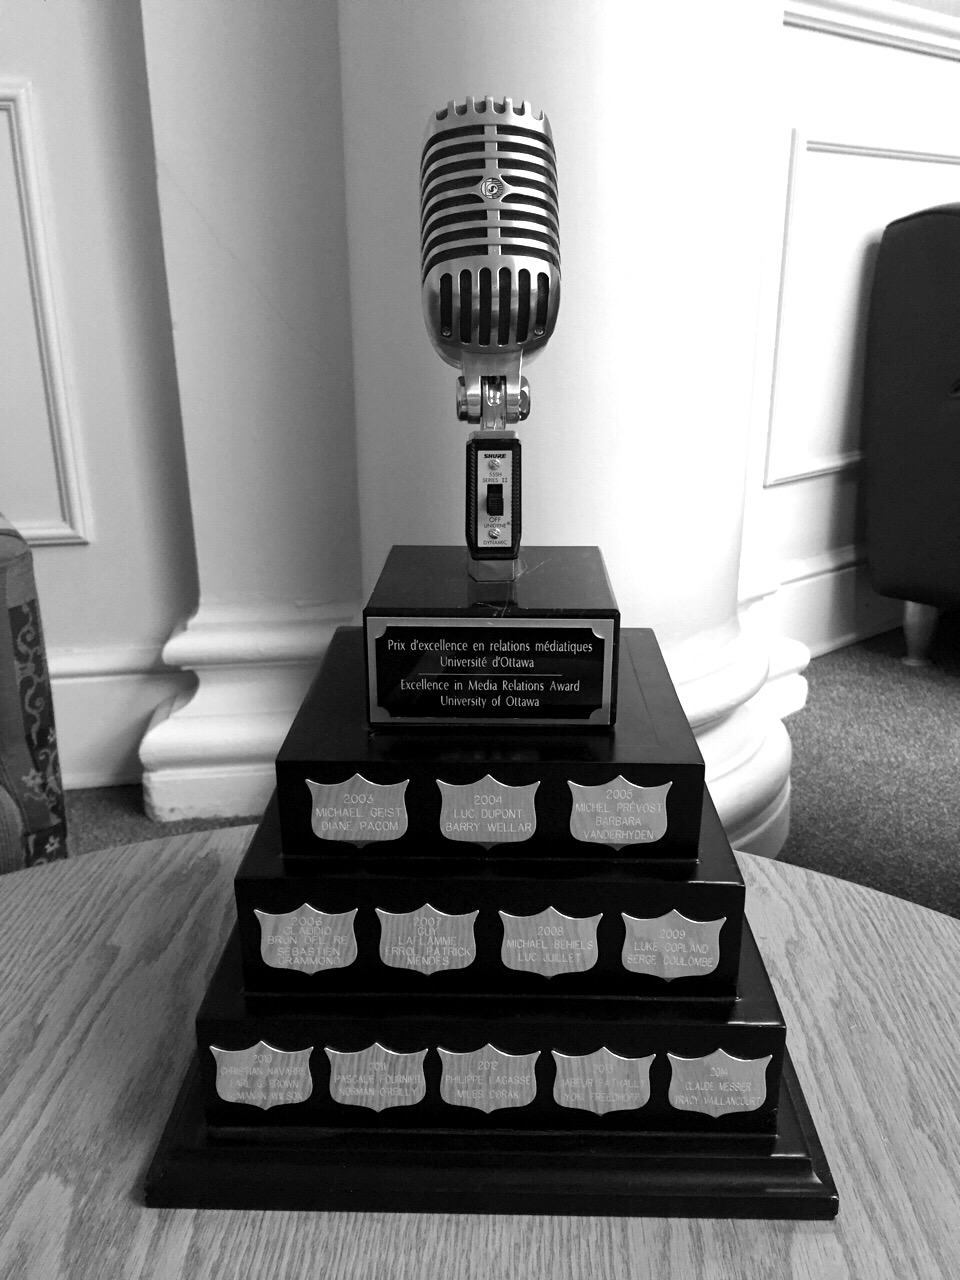 Large trophy with a microphone at the top sitting on a table.